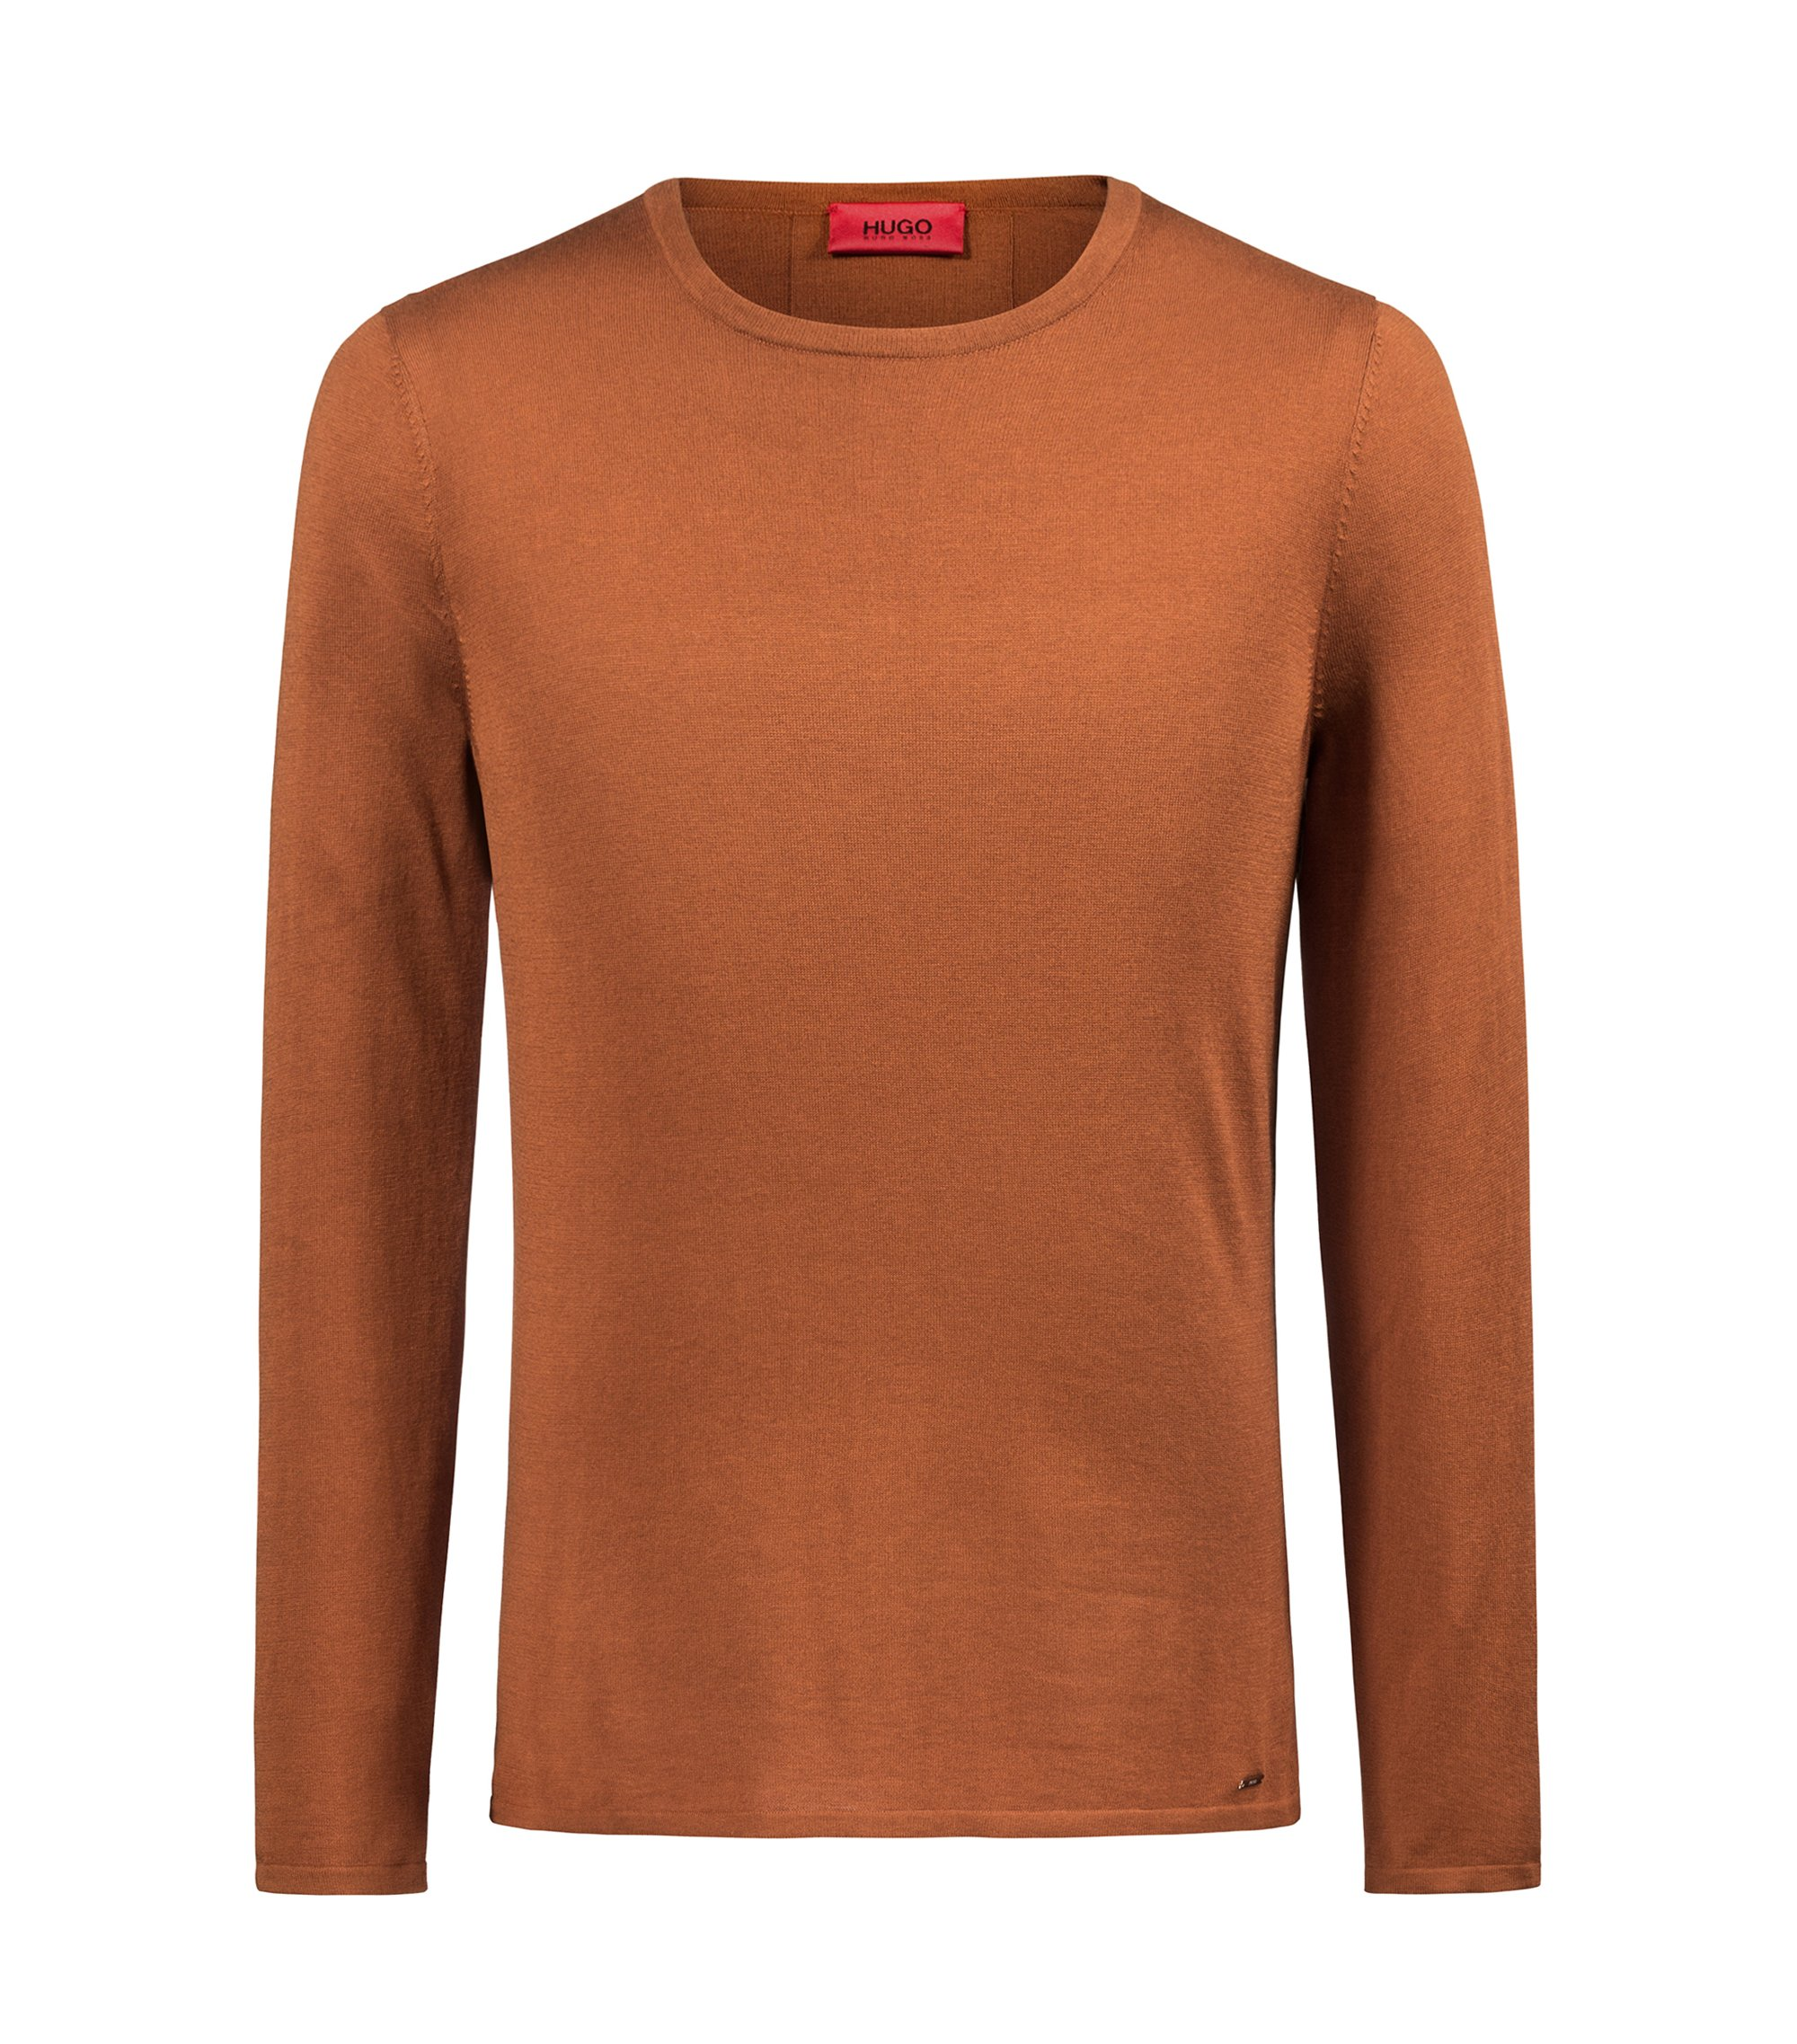 Crew-neck sweater in a cotton blend, Brown